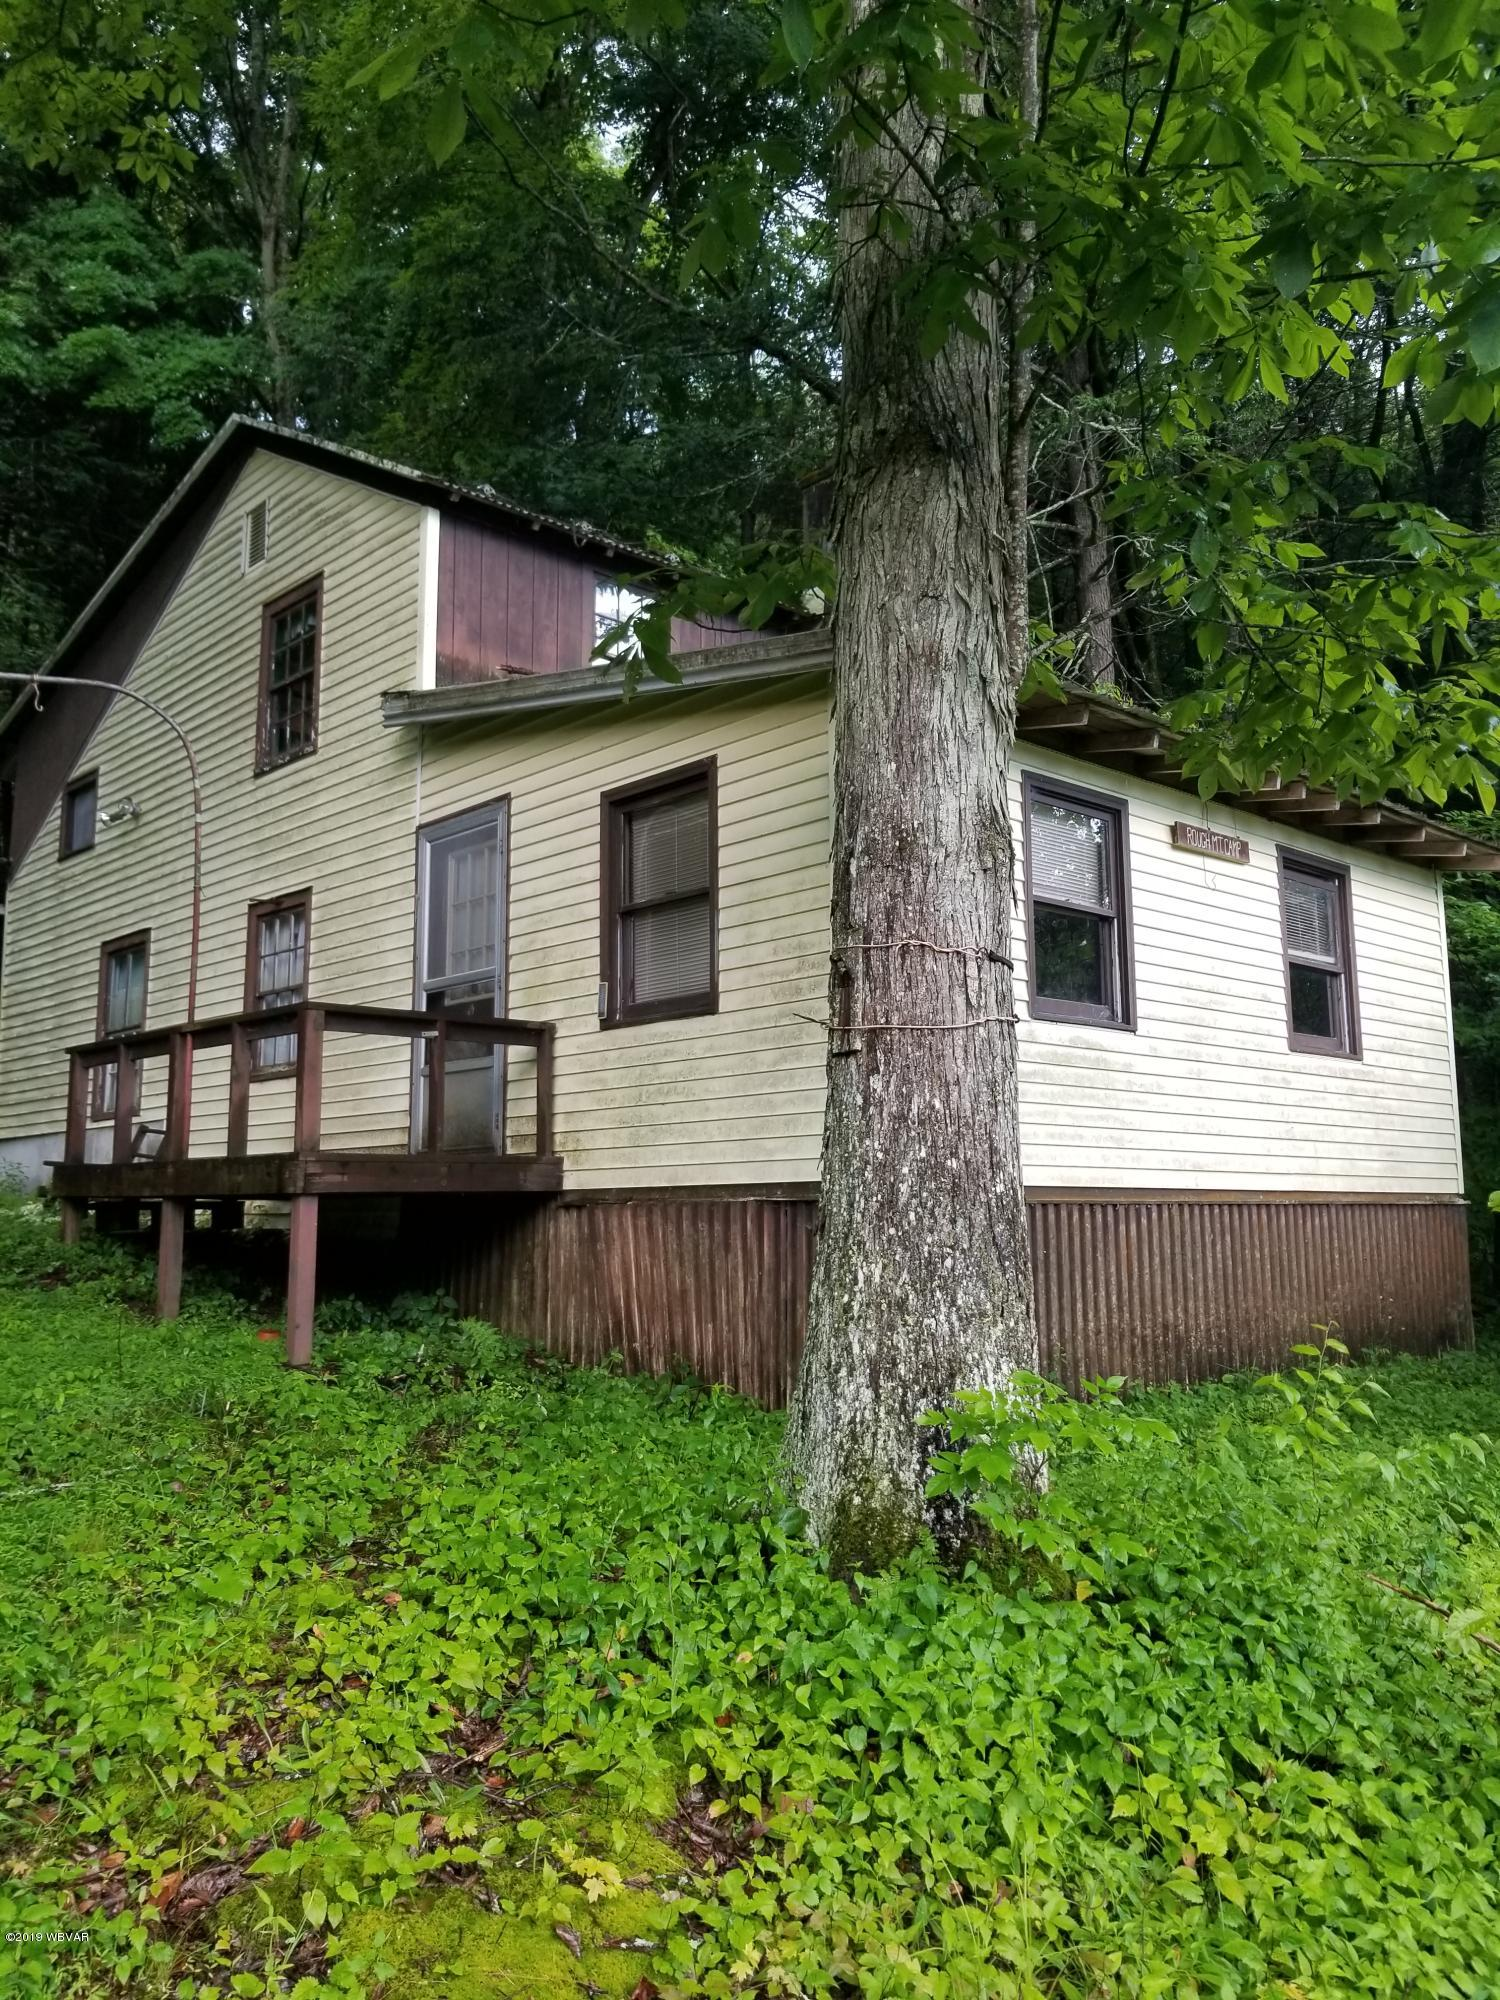 70 PA-87 HIGHWAY,Hillsgrove,PA 18619,4 Bedrooms Bedrooms,Cabin/vacation home,PA-87,WB-87964